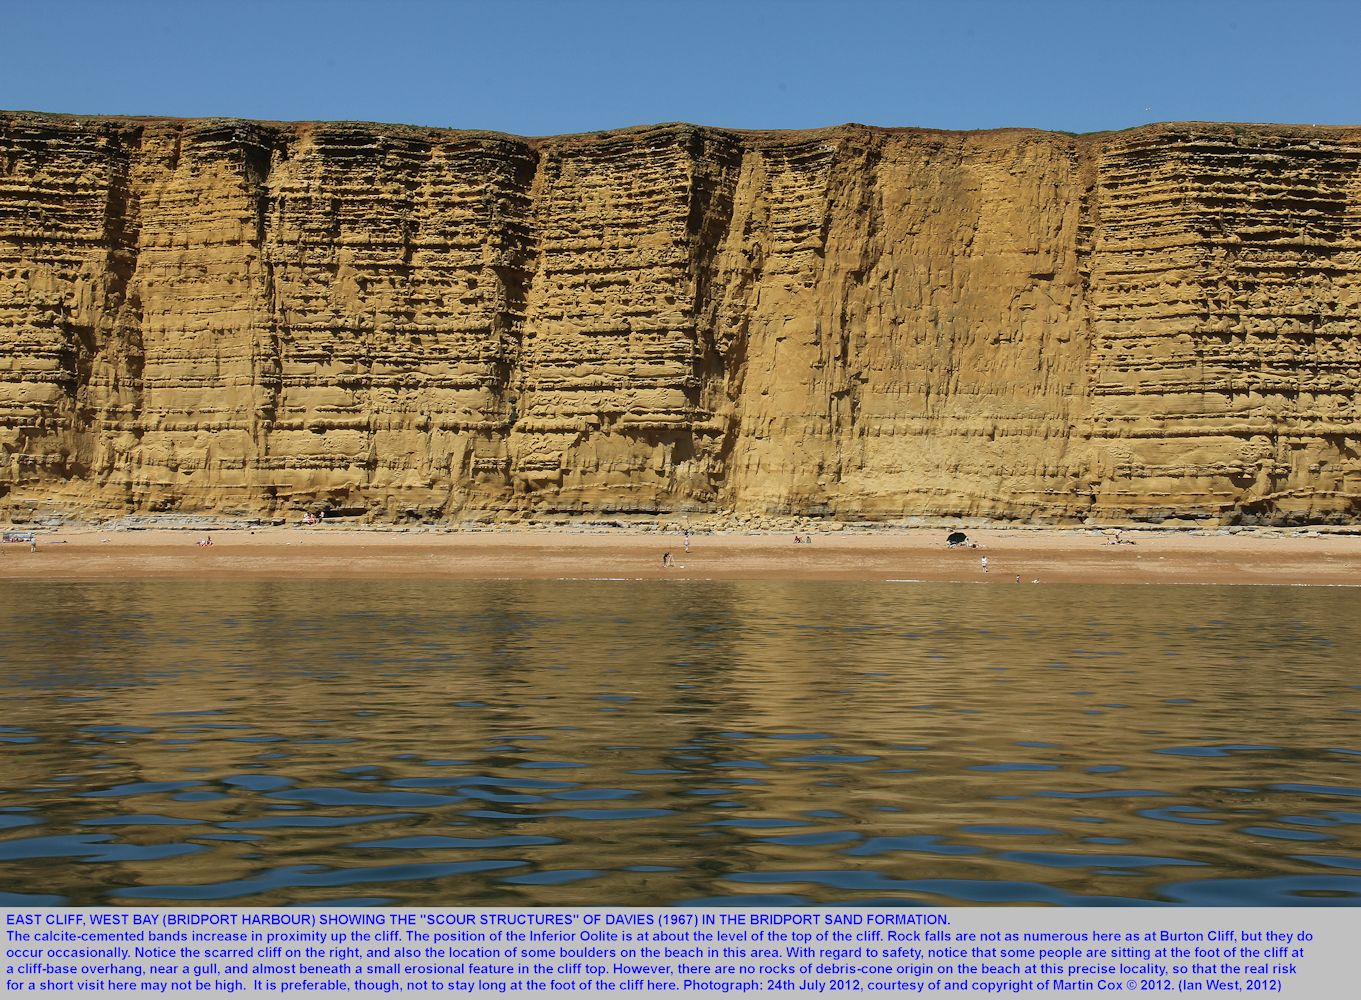 Major scour strctures in the lower part of the Bridport Sand Formation, East Cliff, West Bay, Bridport, Dorset, photographed from the sea by Martin Cox, 24th July 2012